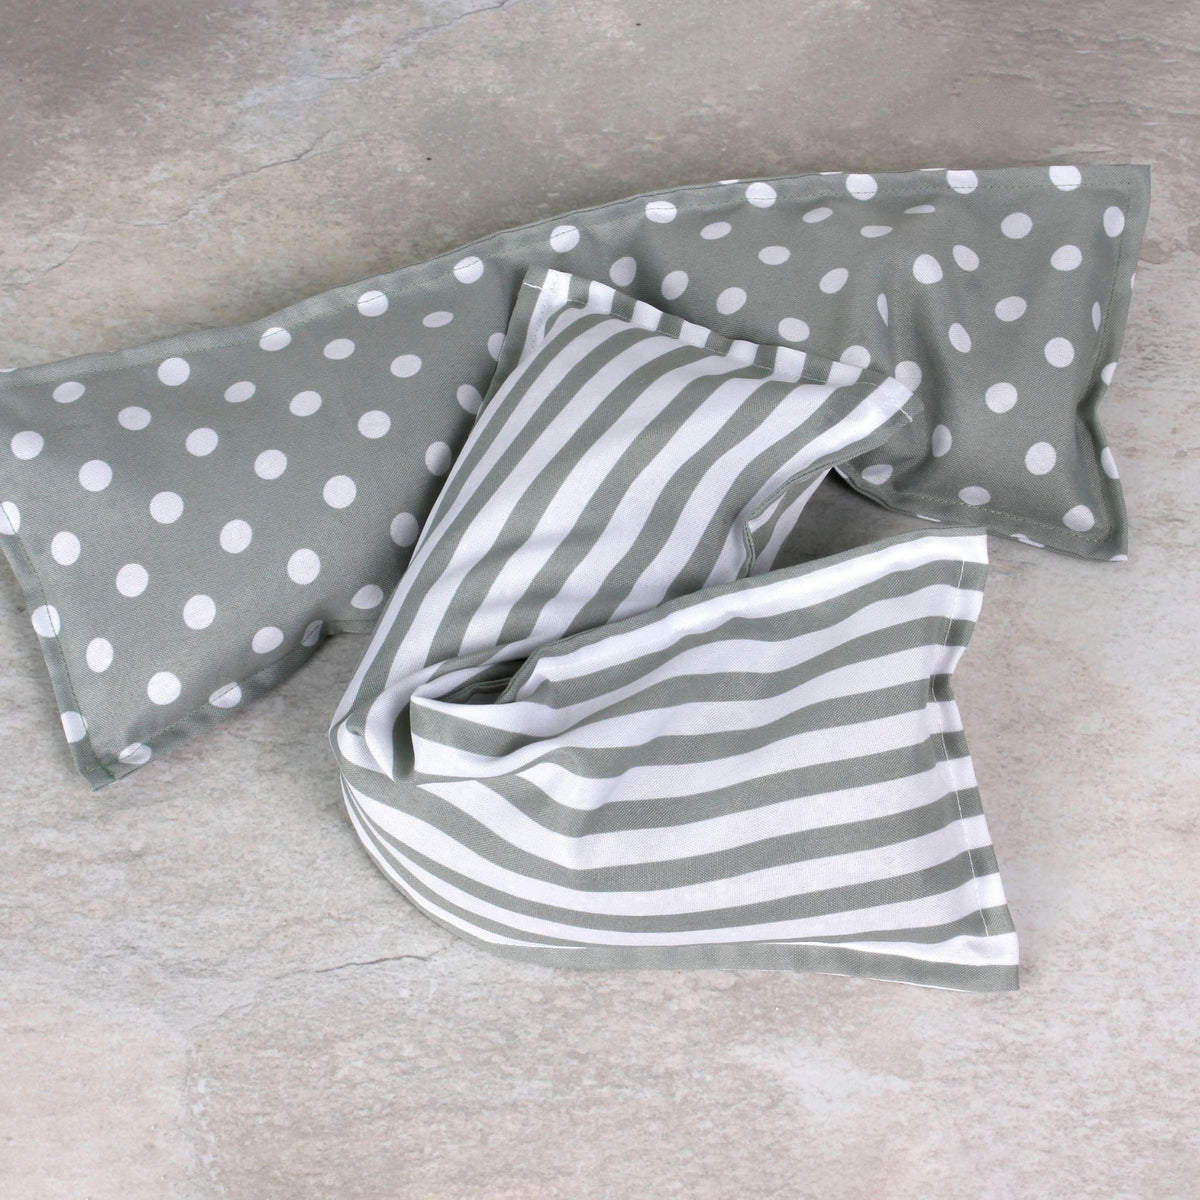 Eucalyptus and Peppermint Heat Therapy Pillow